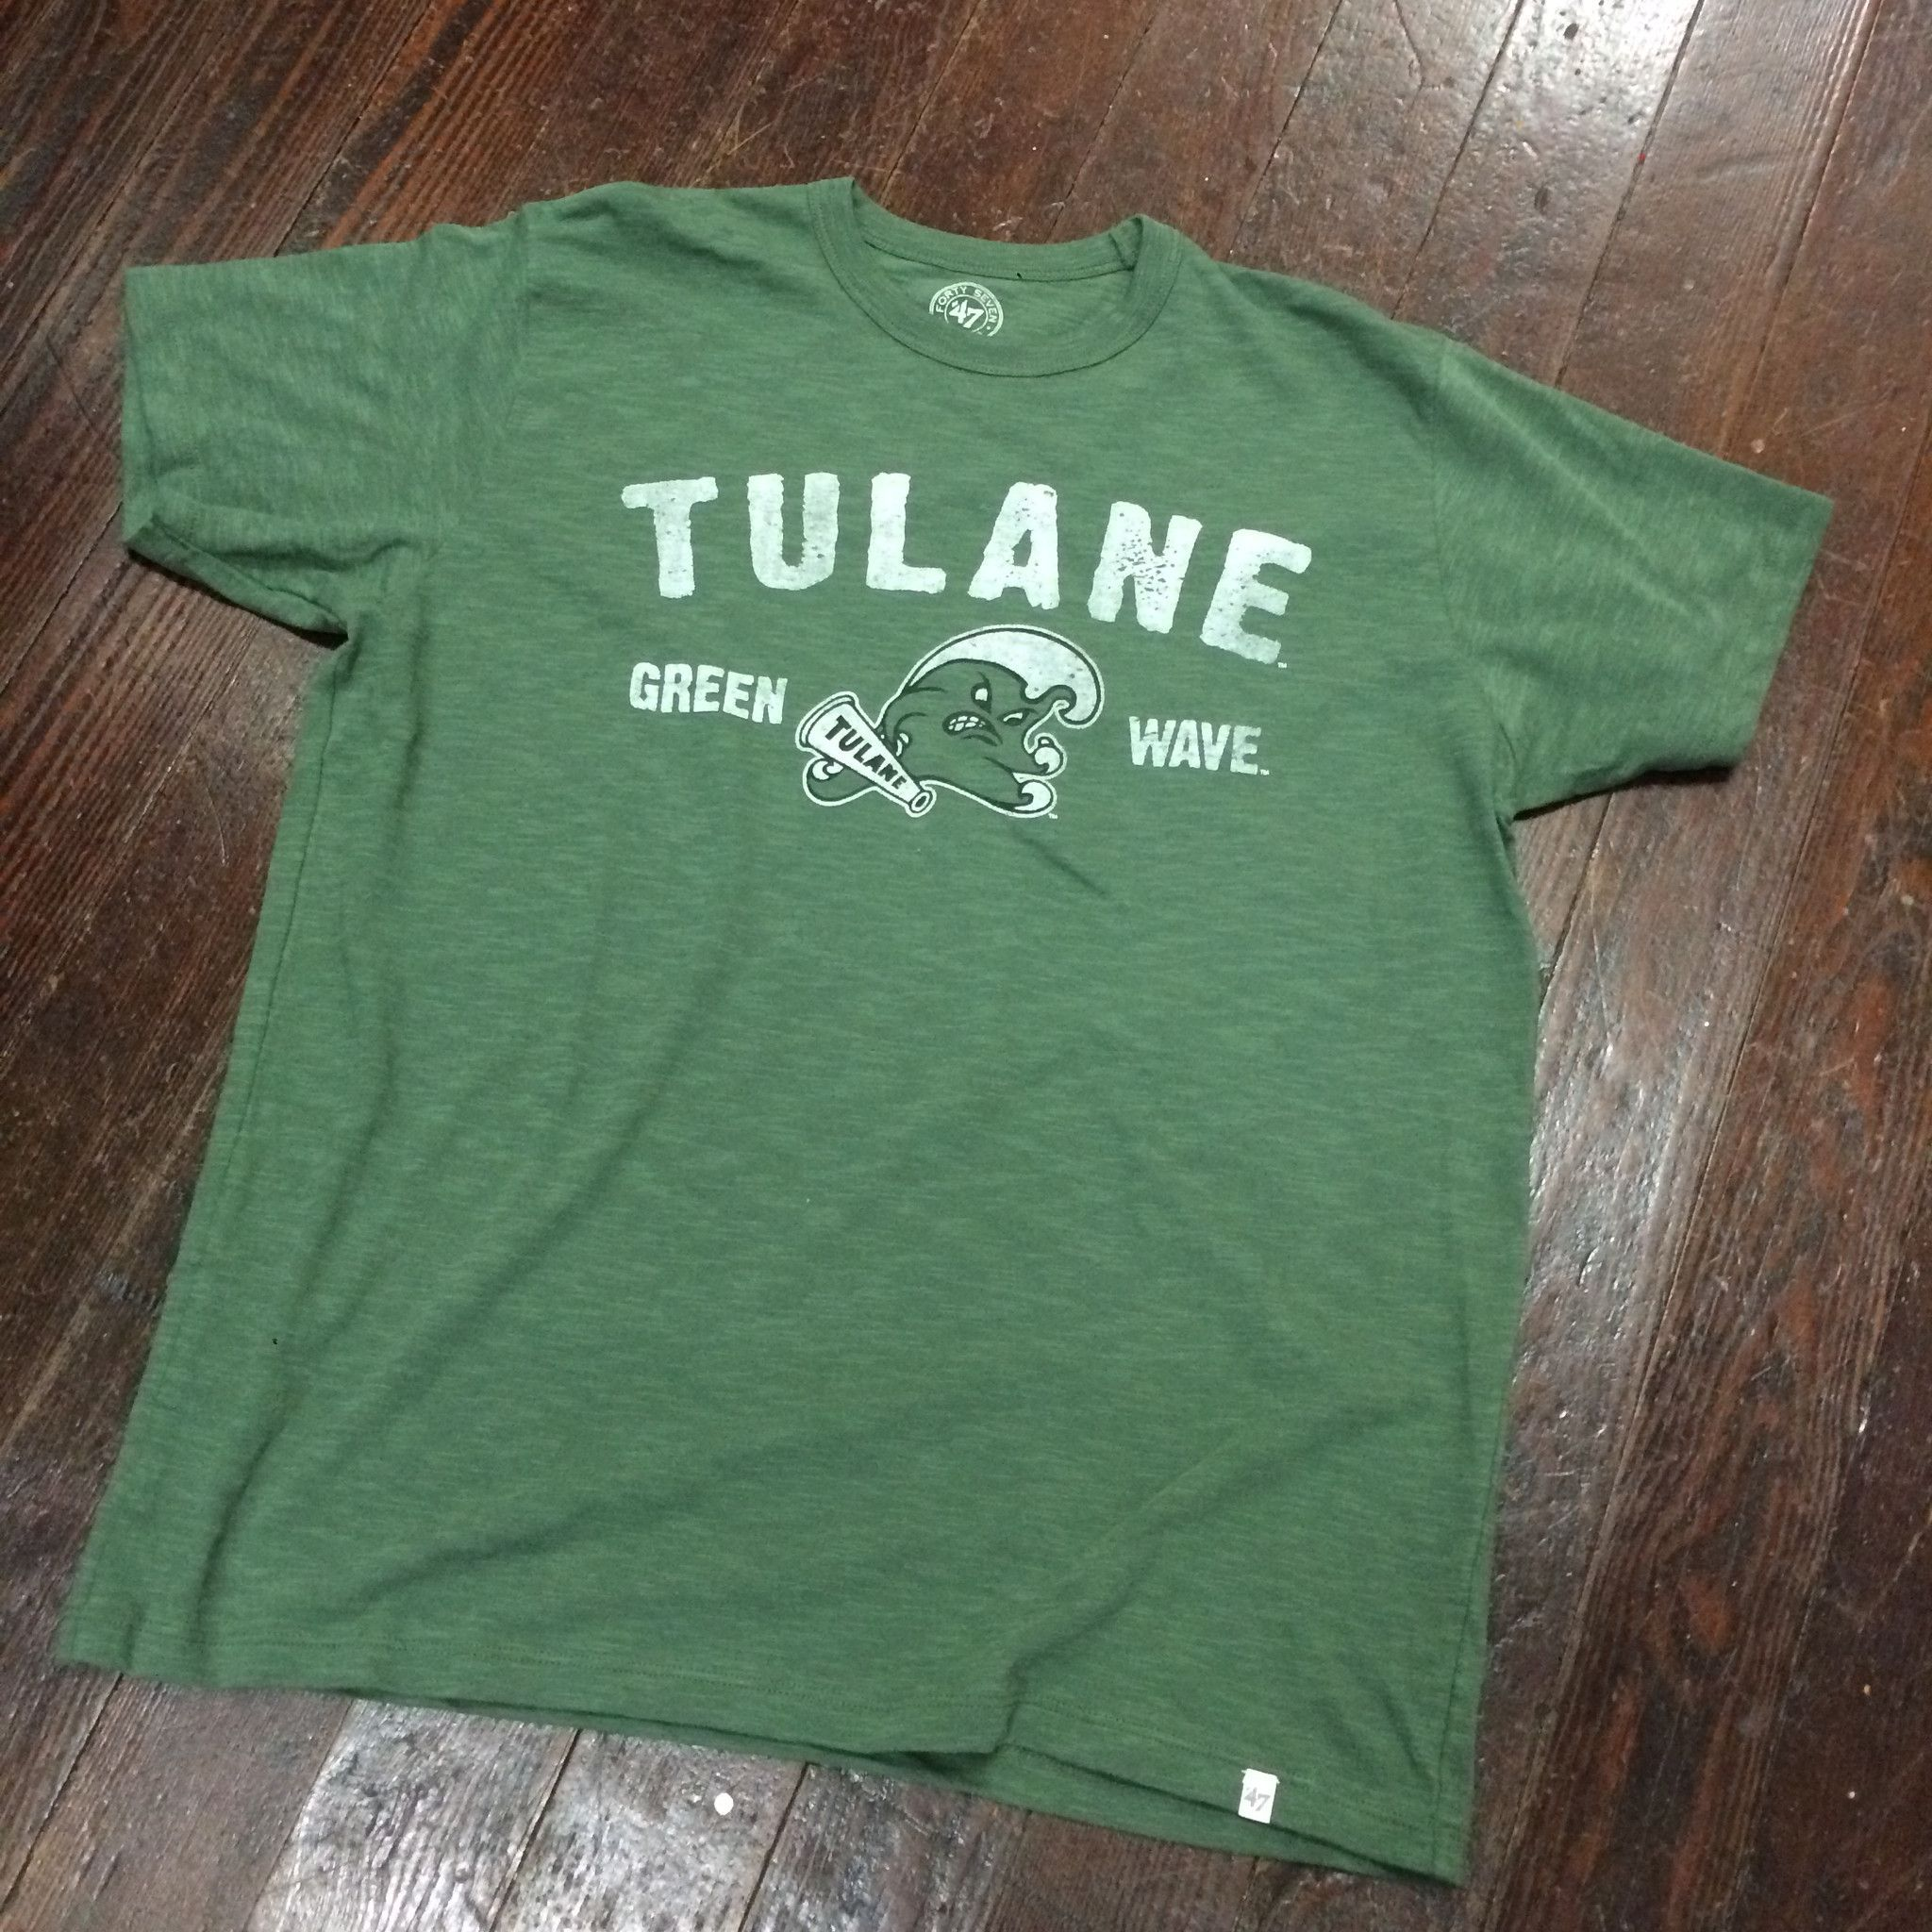 Home college tulane green wave tulane green wave silver plated - Tulane Gumby Green Wave Scrum Tee